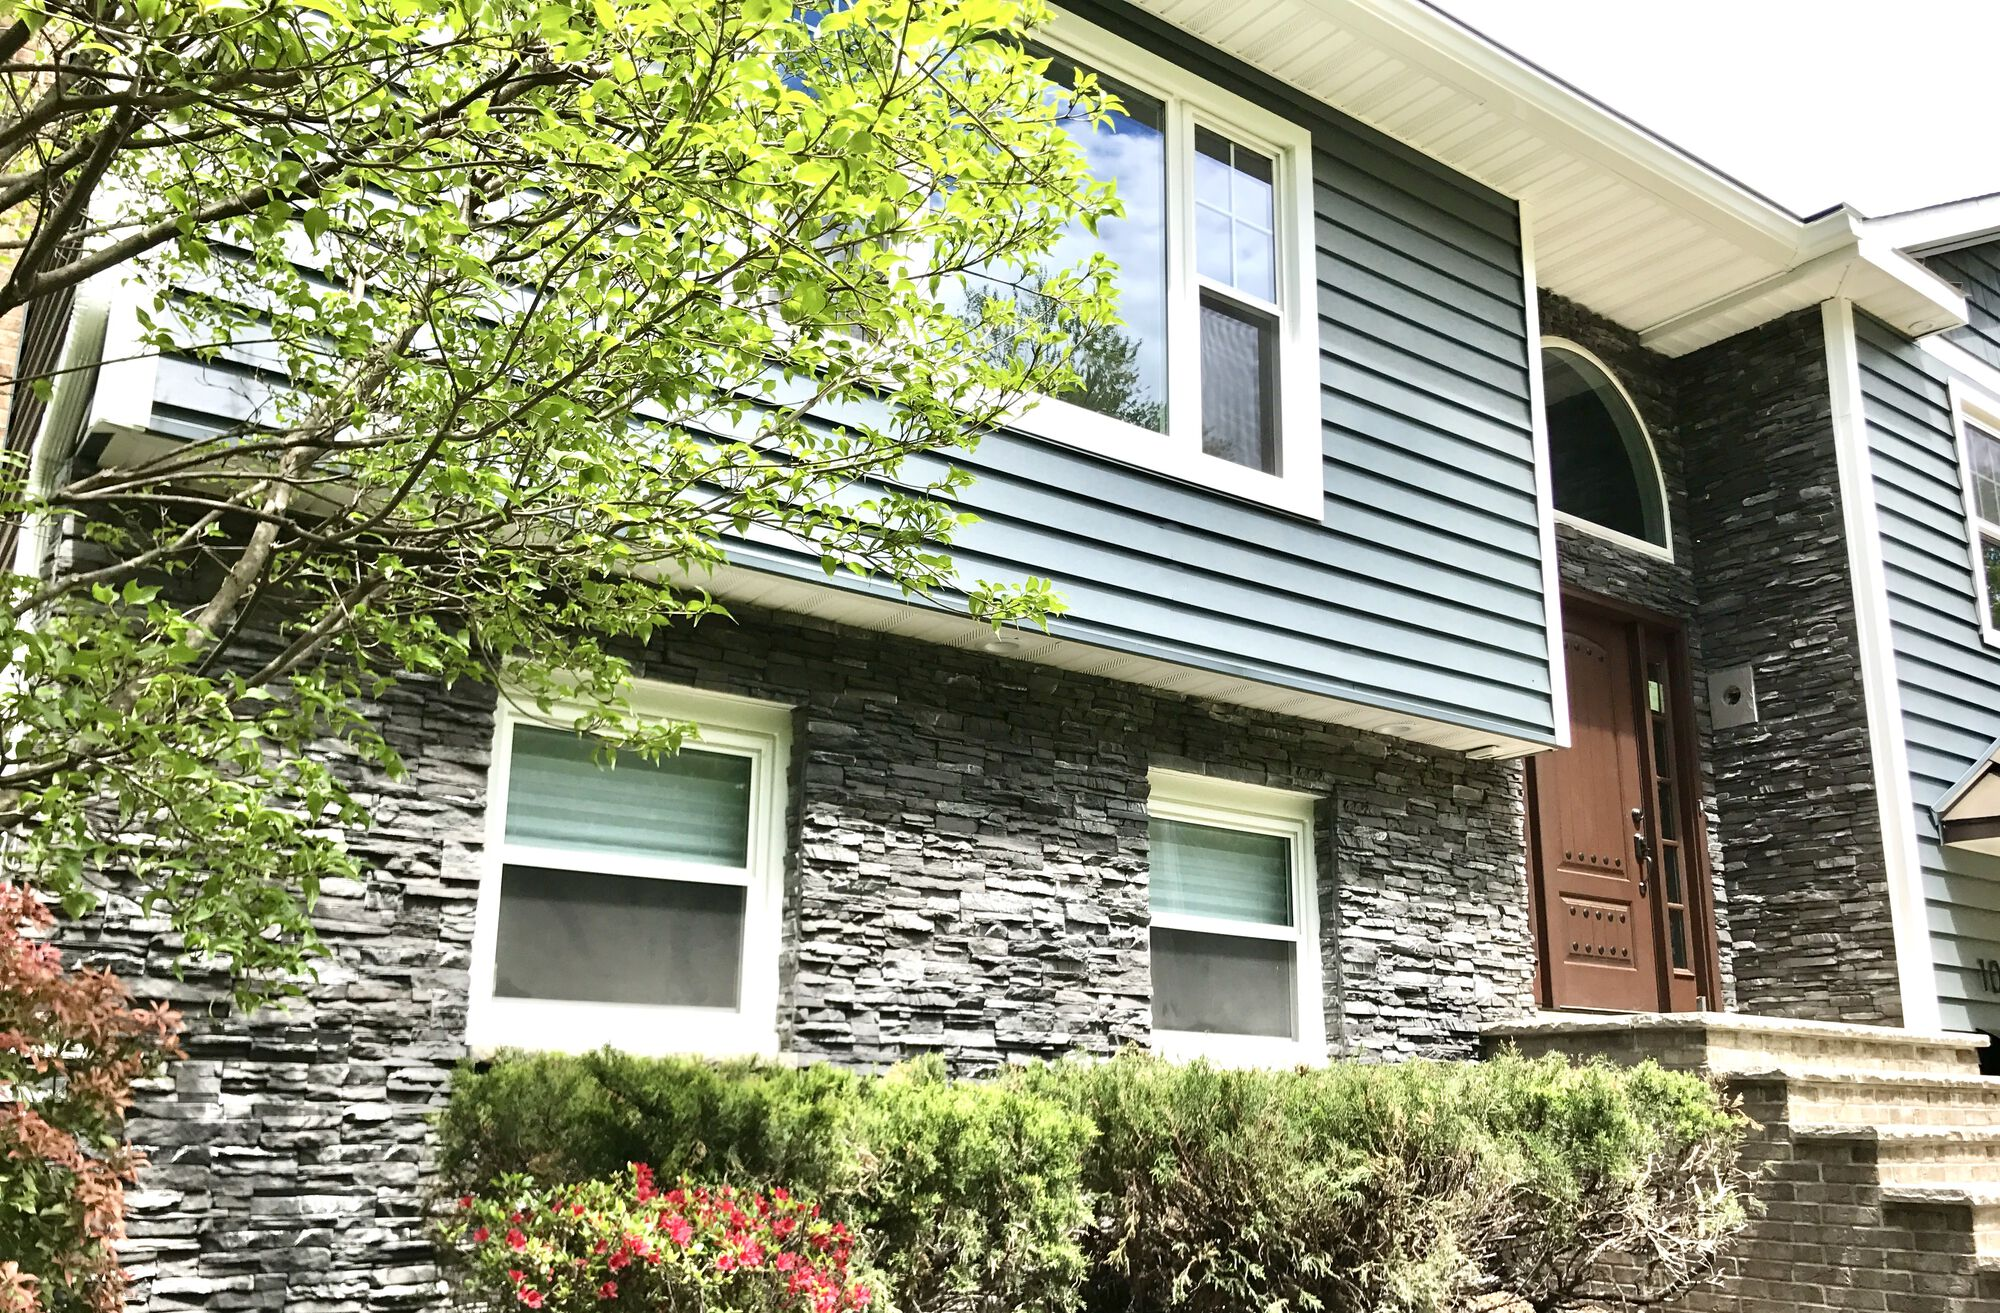 Prodigy Midnight Blue Insulated Clapboard Siding, Profit Cultured Stone, Custom Fit Vinyl Windows In Morristown, Morris County, NJ